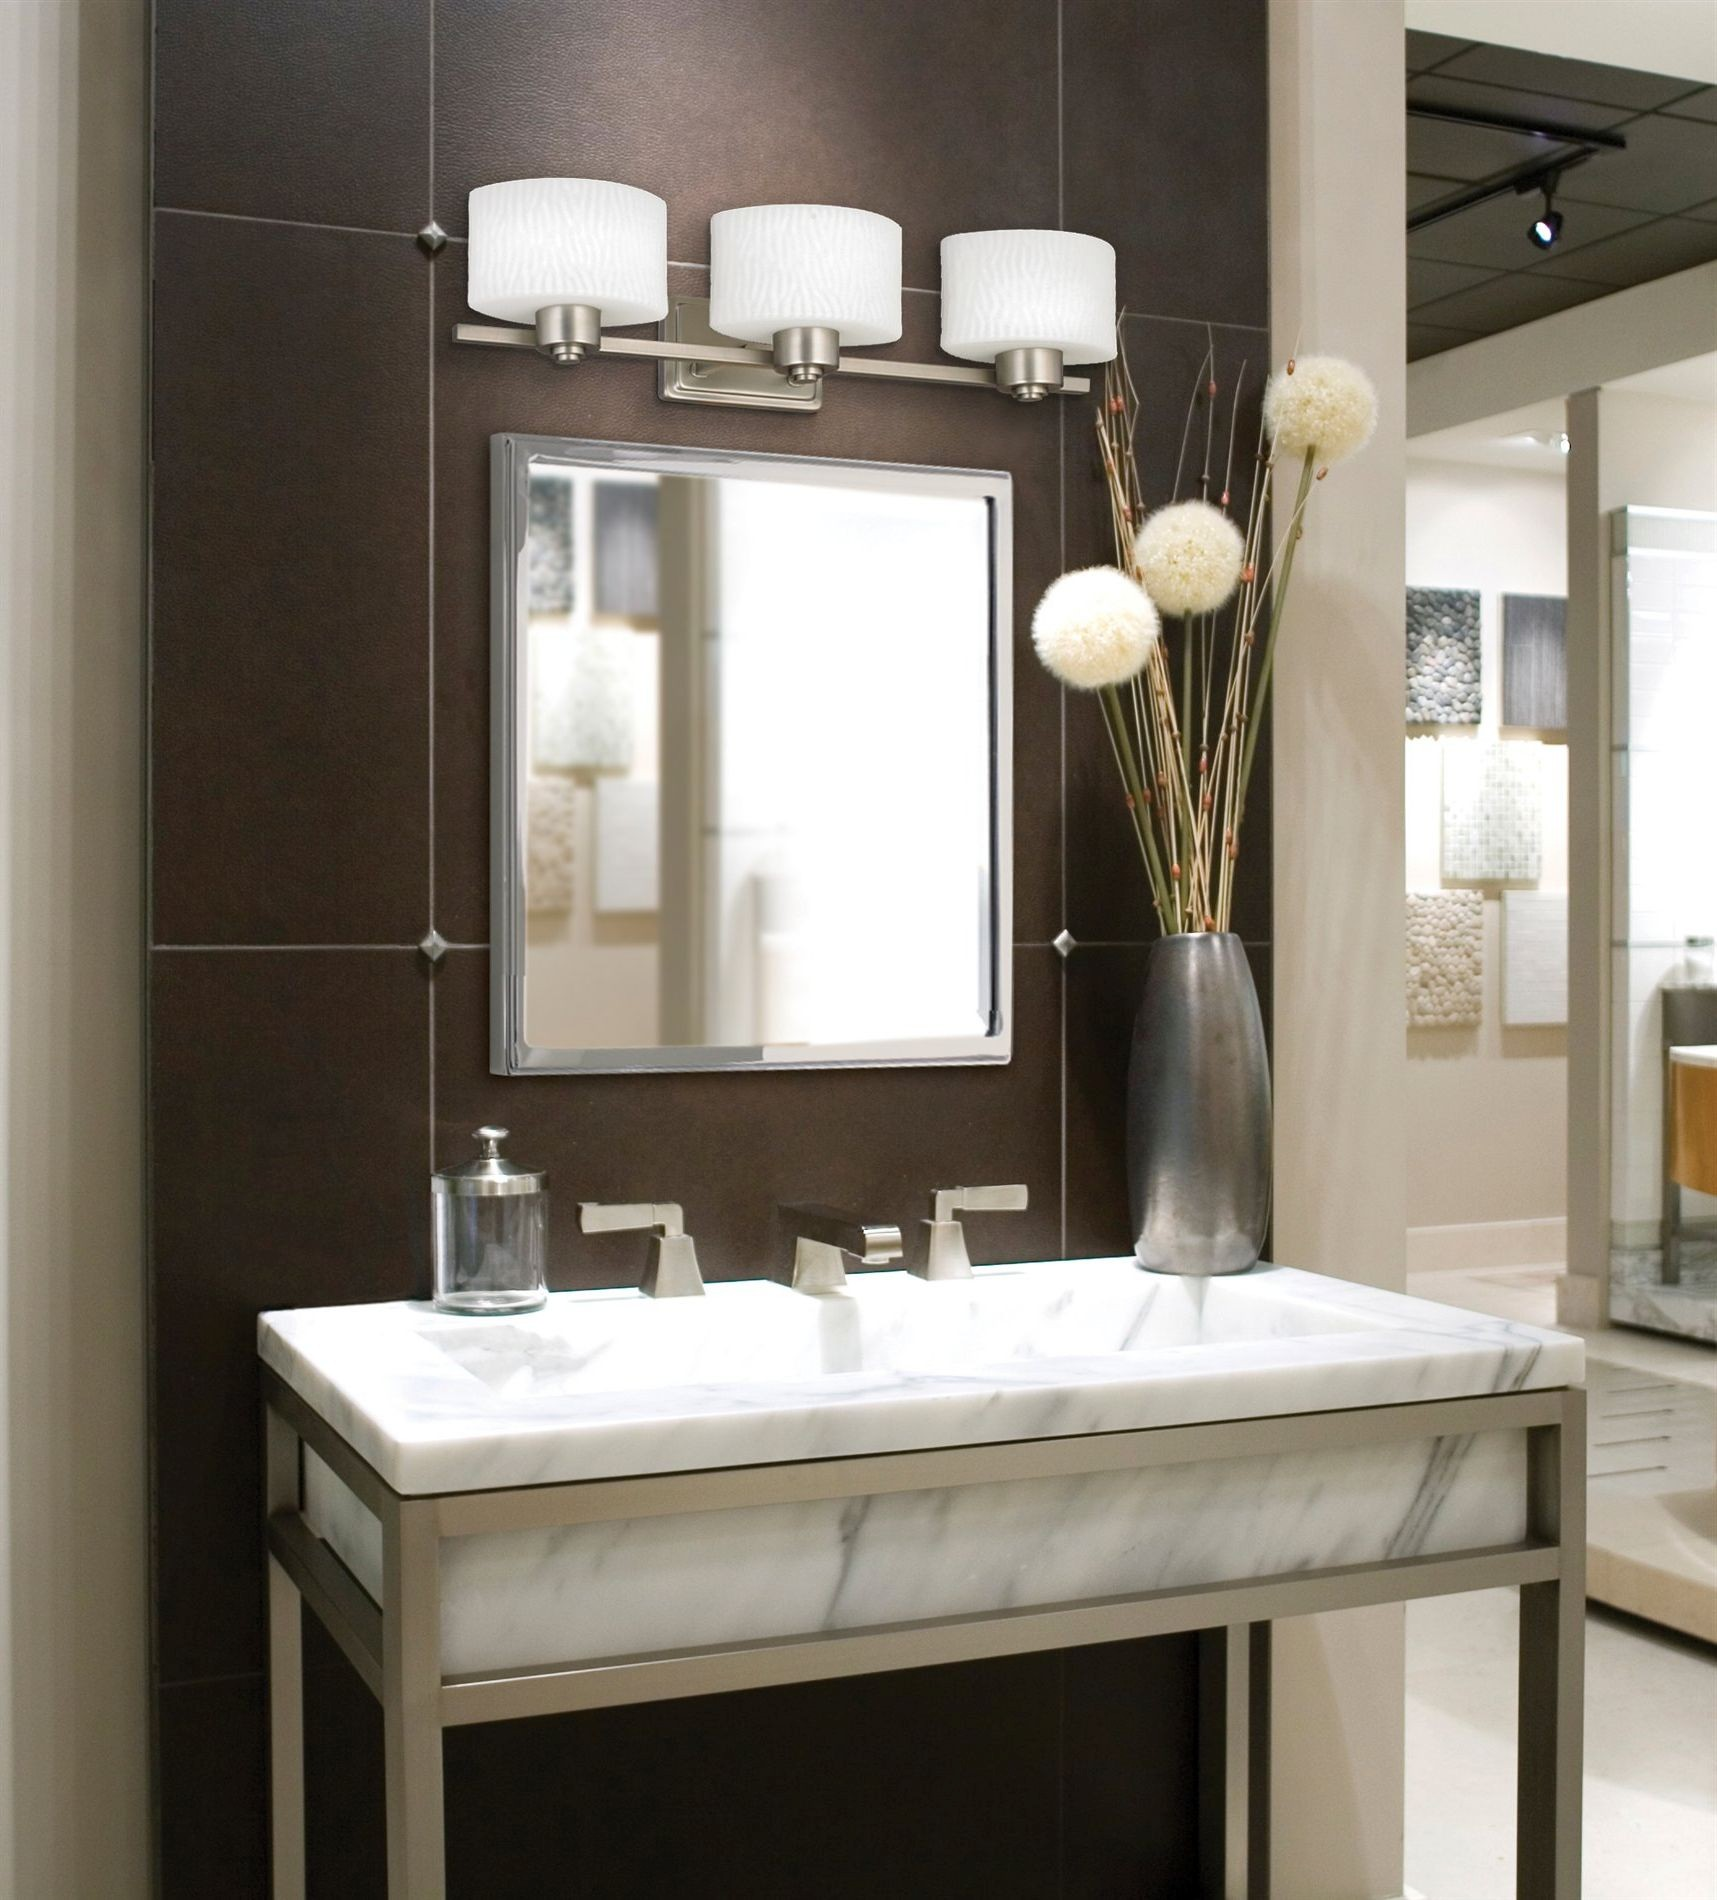 New Bathroom Lights Above Mirror Model Design Ideas Gallery Image And Wallpaper